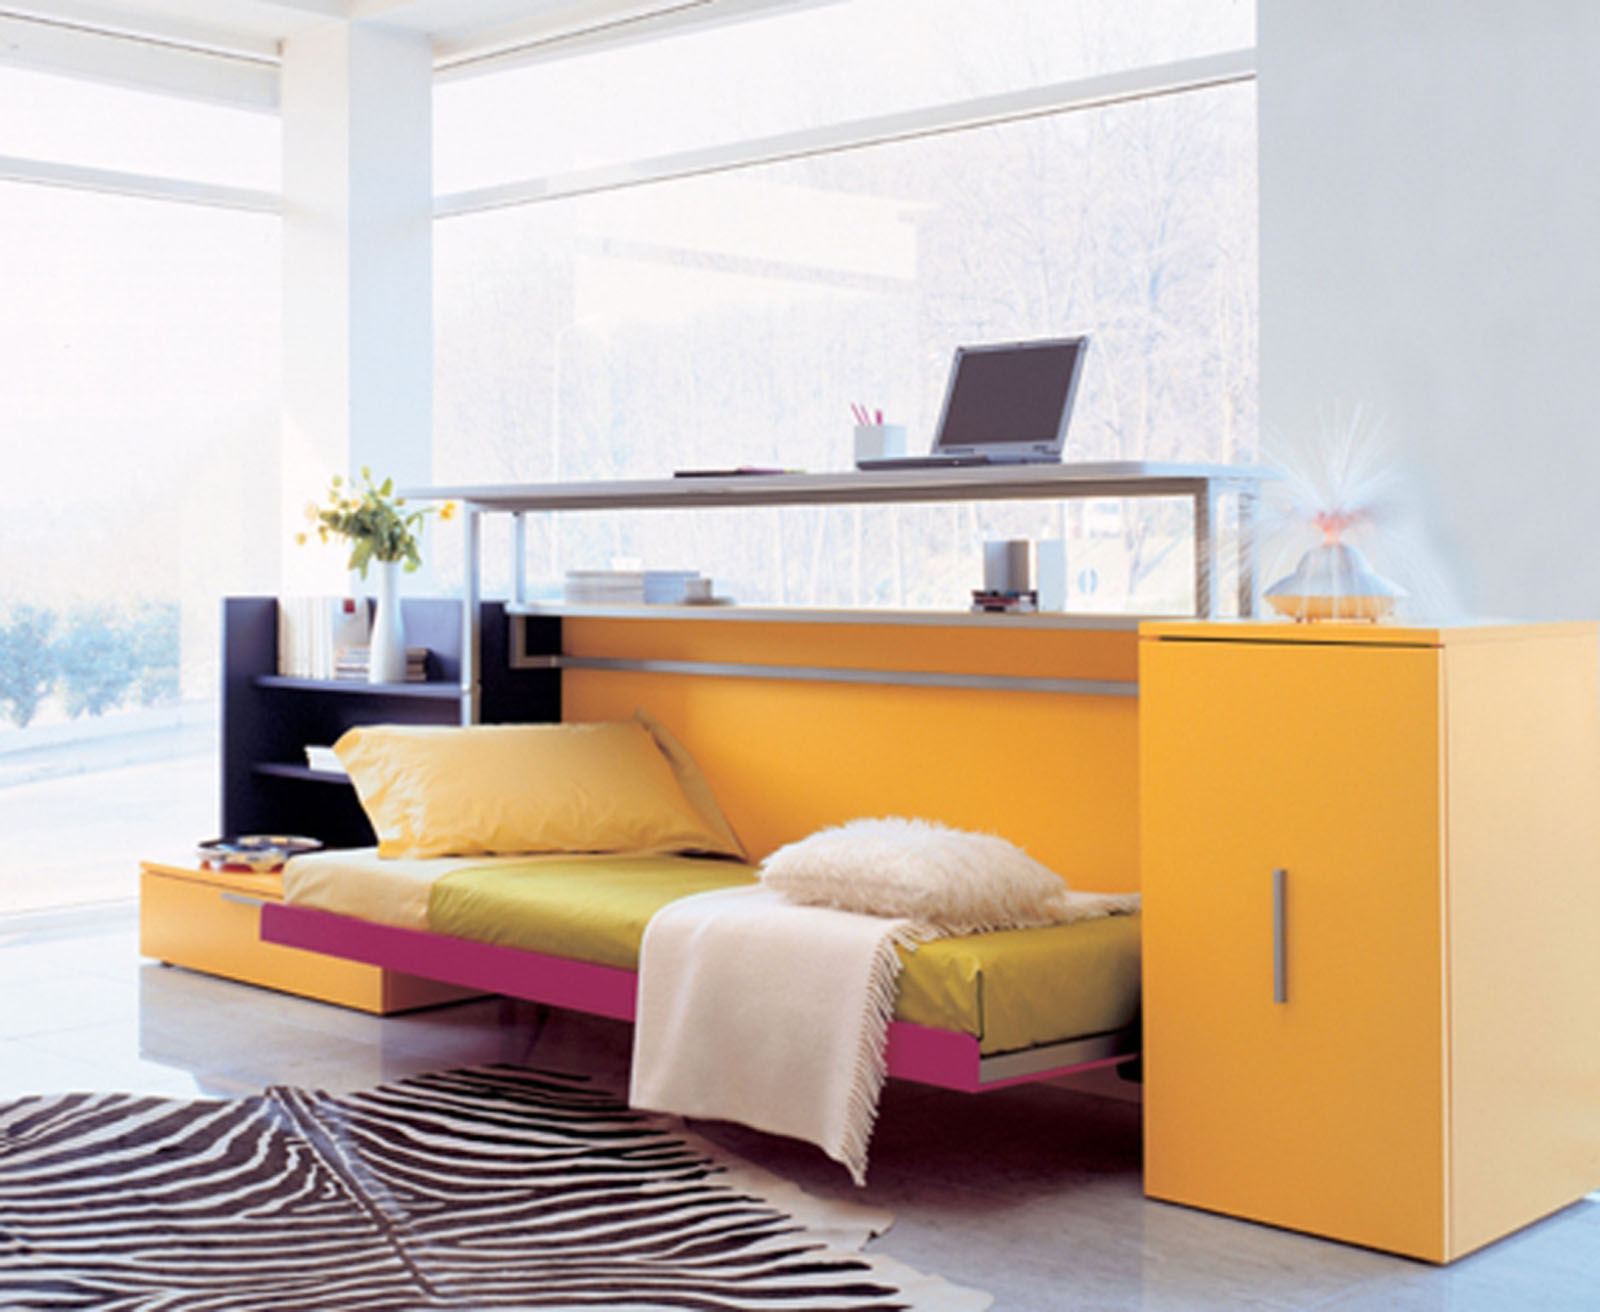 Orange Cabinet and Flipped Bed as Cute Furniture for Small Spaces on Granite Flooring near Glass Wall